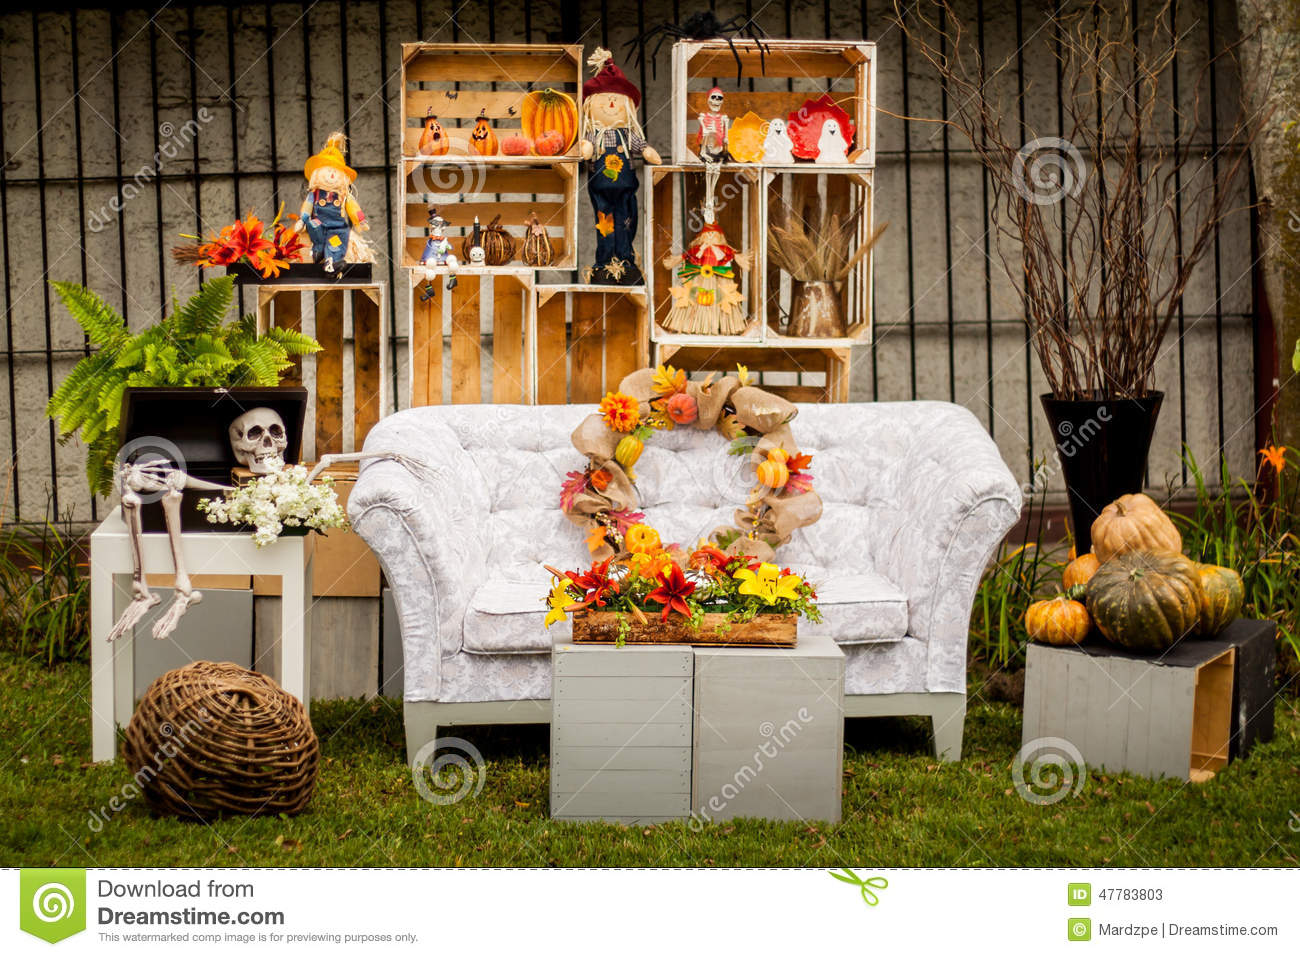 Decoration Exterieur Halloween Décor De Vintage De Décoration De Halloween Image Stock Image Du